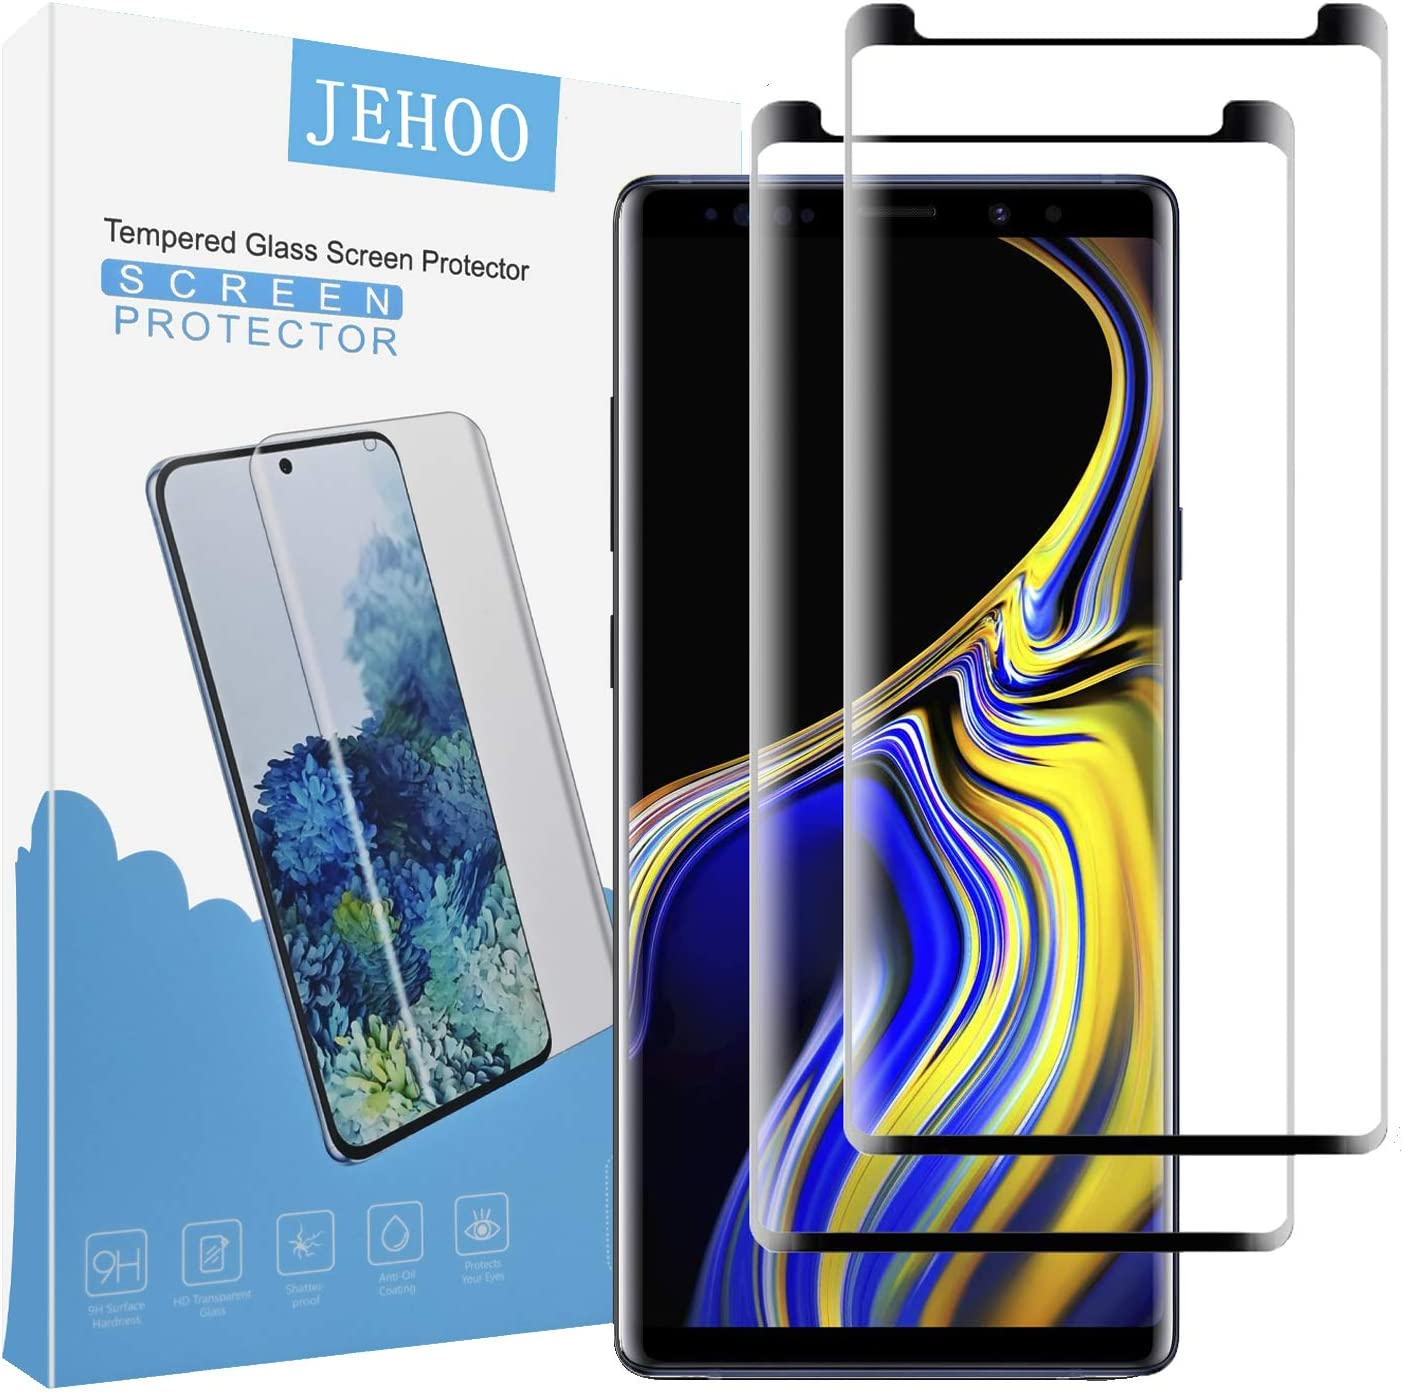 JEHOO Note 9 Screen Protector, [2 Pack] [New Version] HD Clear Tempered Glass, Anti-Bubble, Case Friendly, Anti-Bubble 3D Touch Accuracy Film for Samsung Note 9